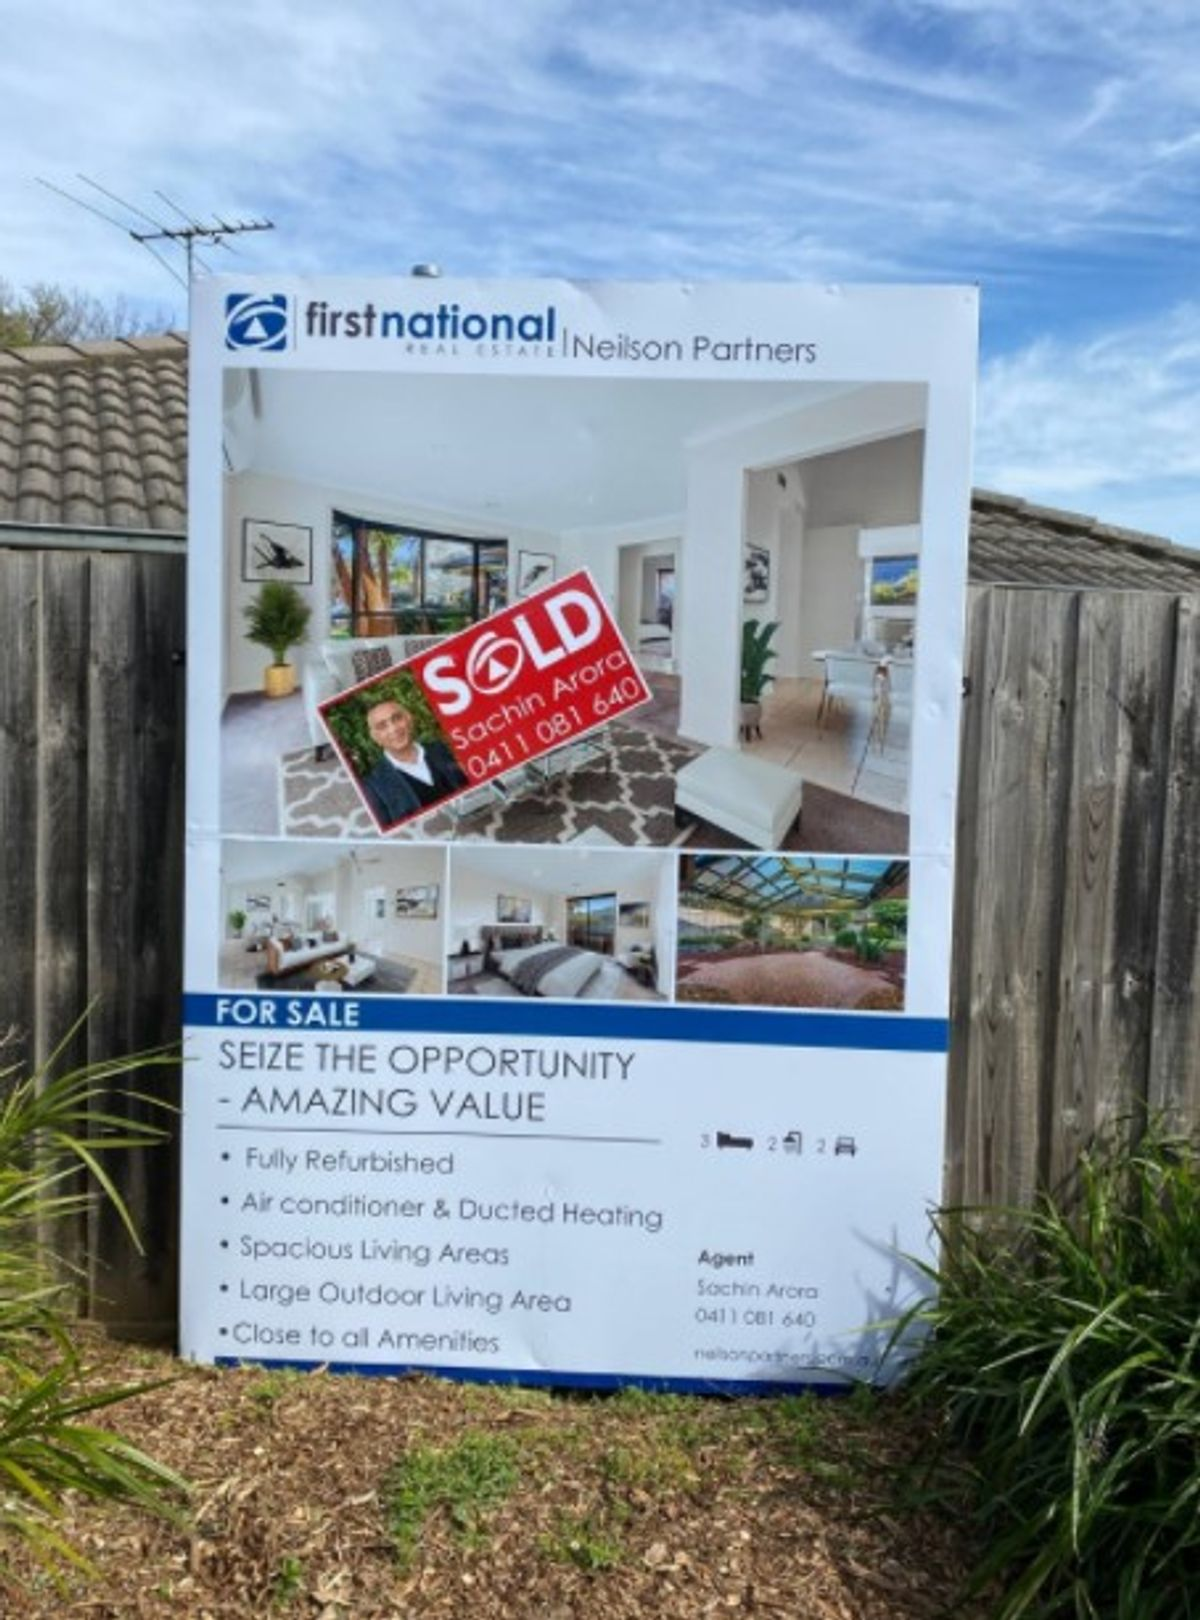 Sold sticker on 6 Marcus Court for sale board